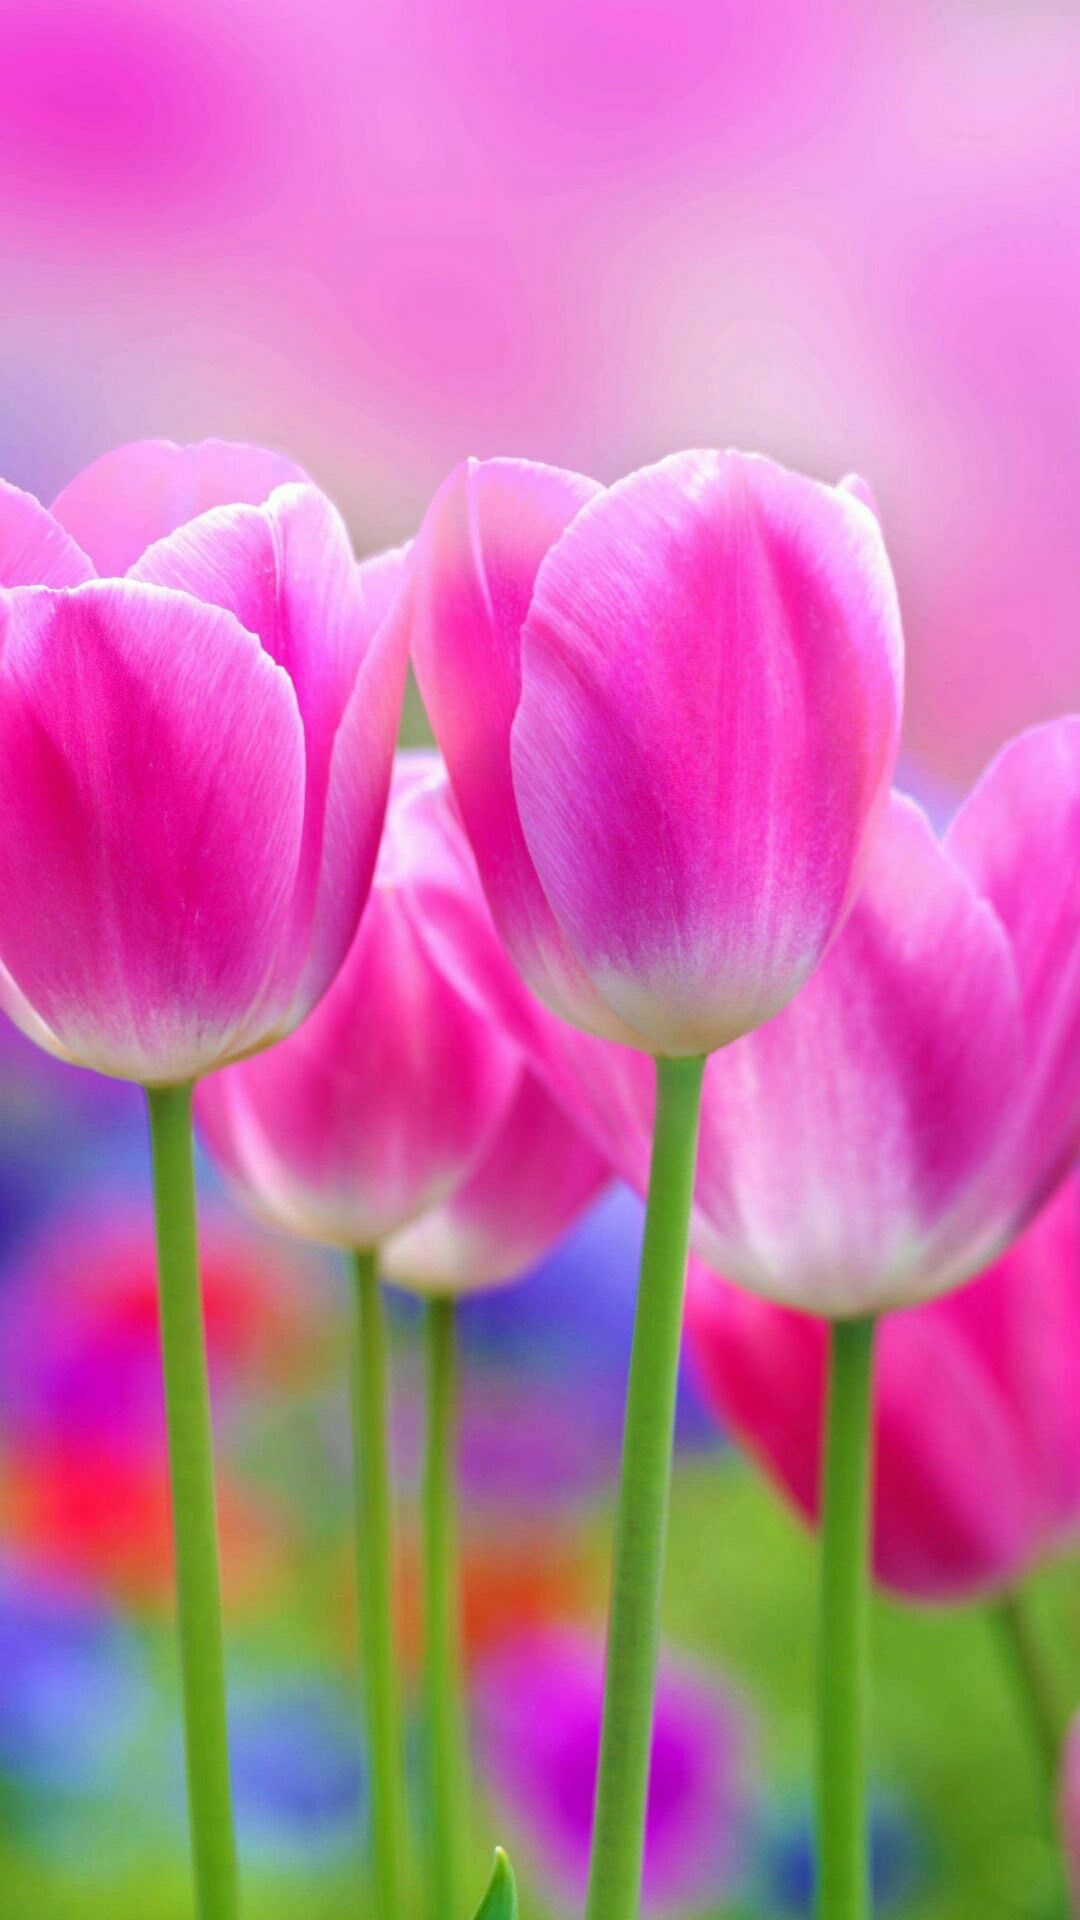 Pin by Nels on Tulips Flower wallpaper, Pink flowers, Tulips